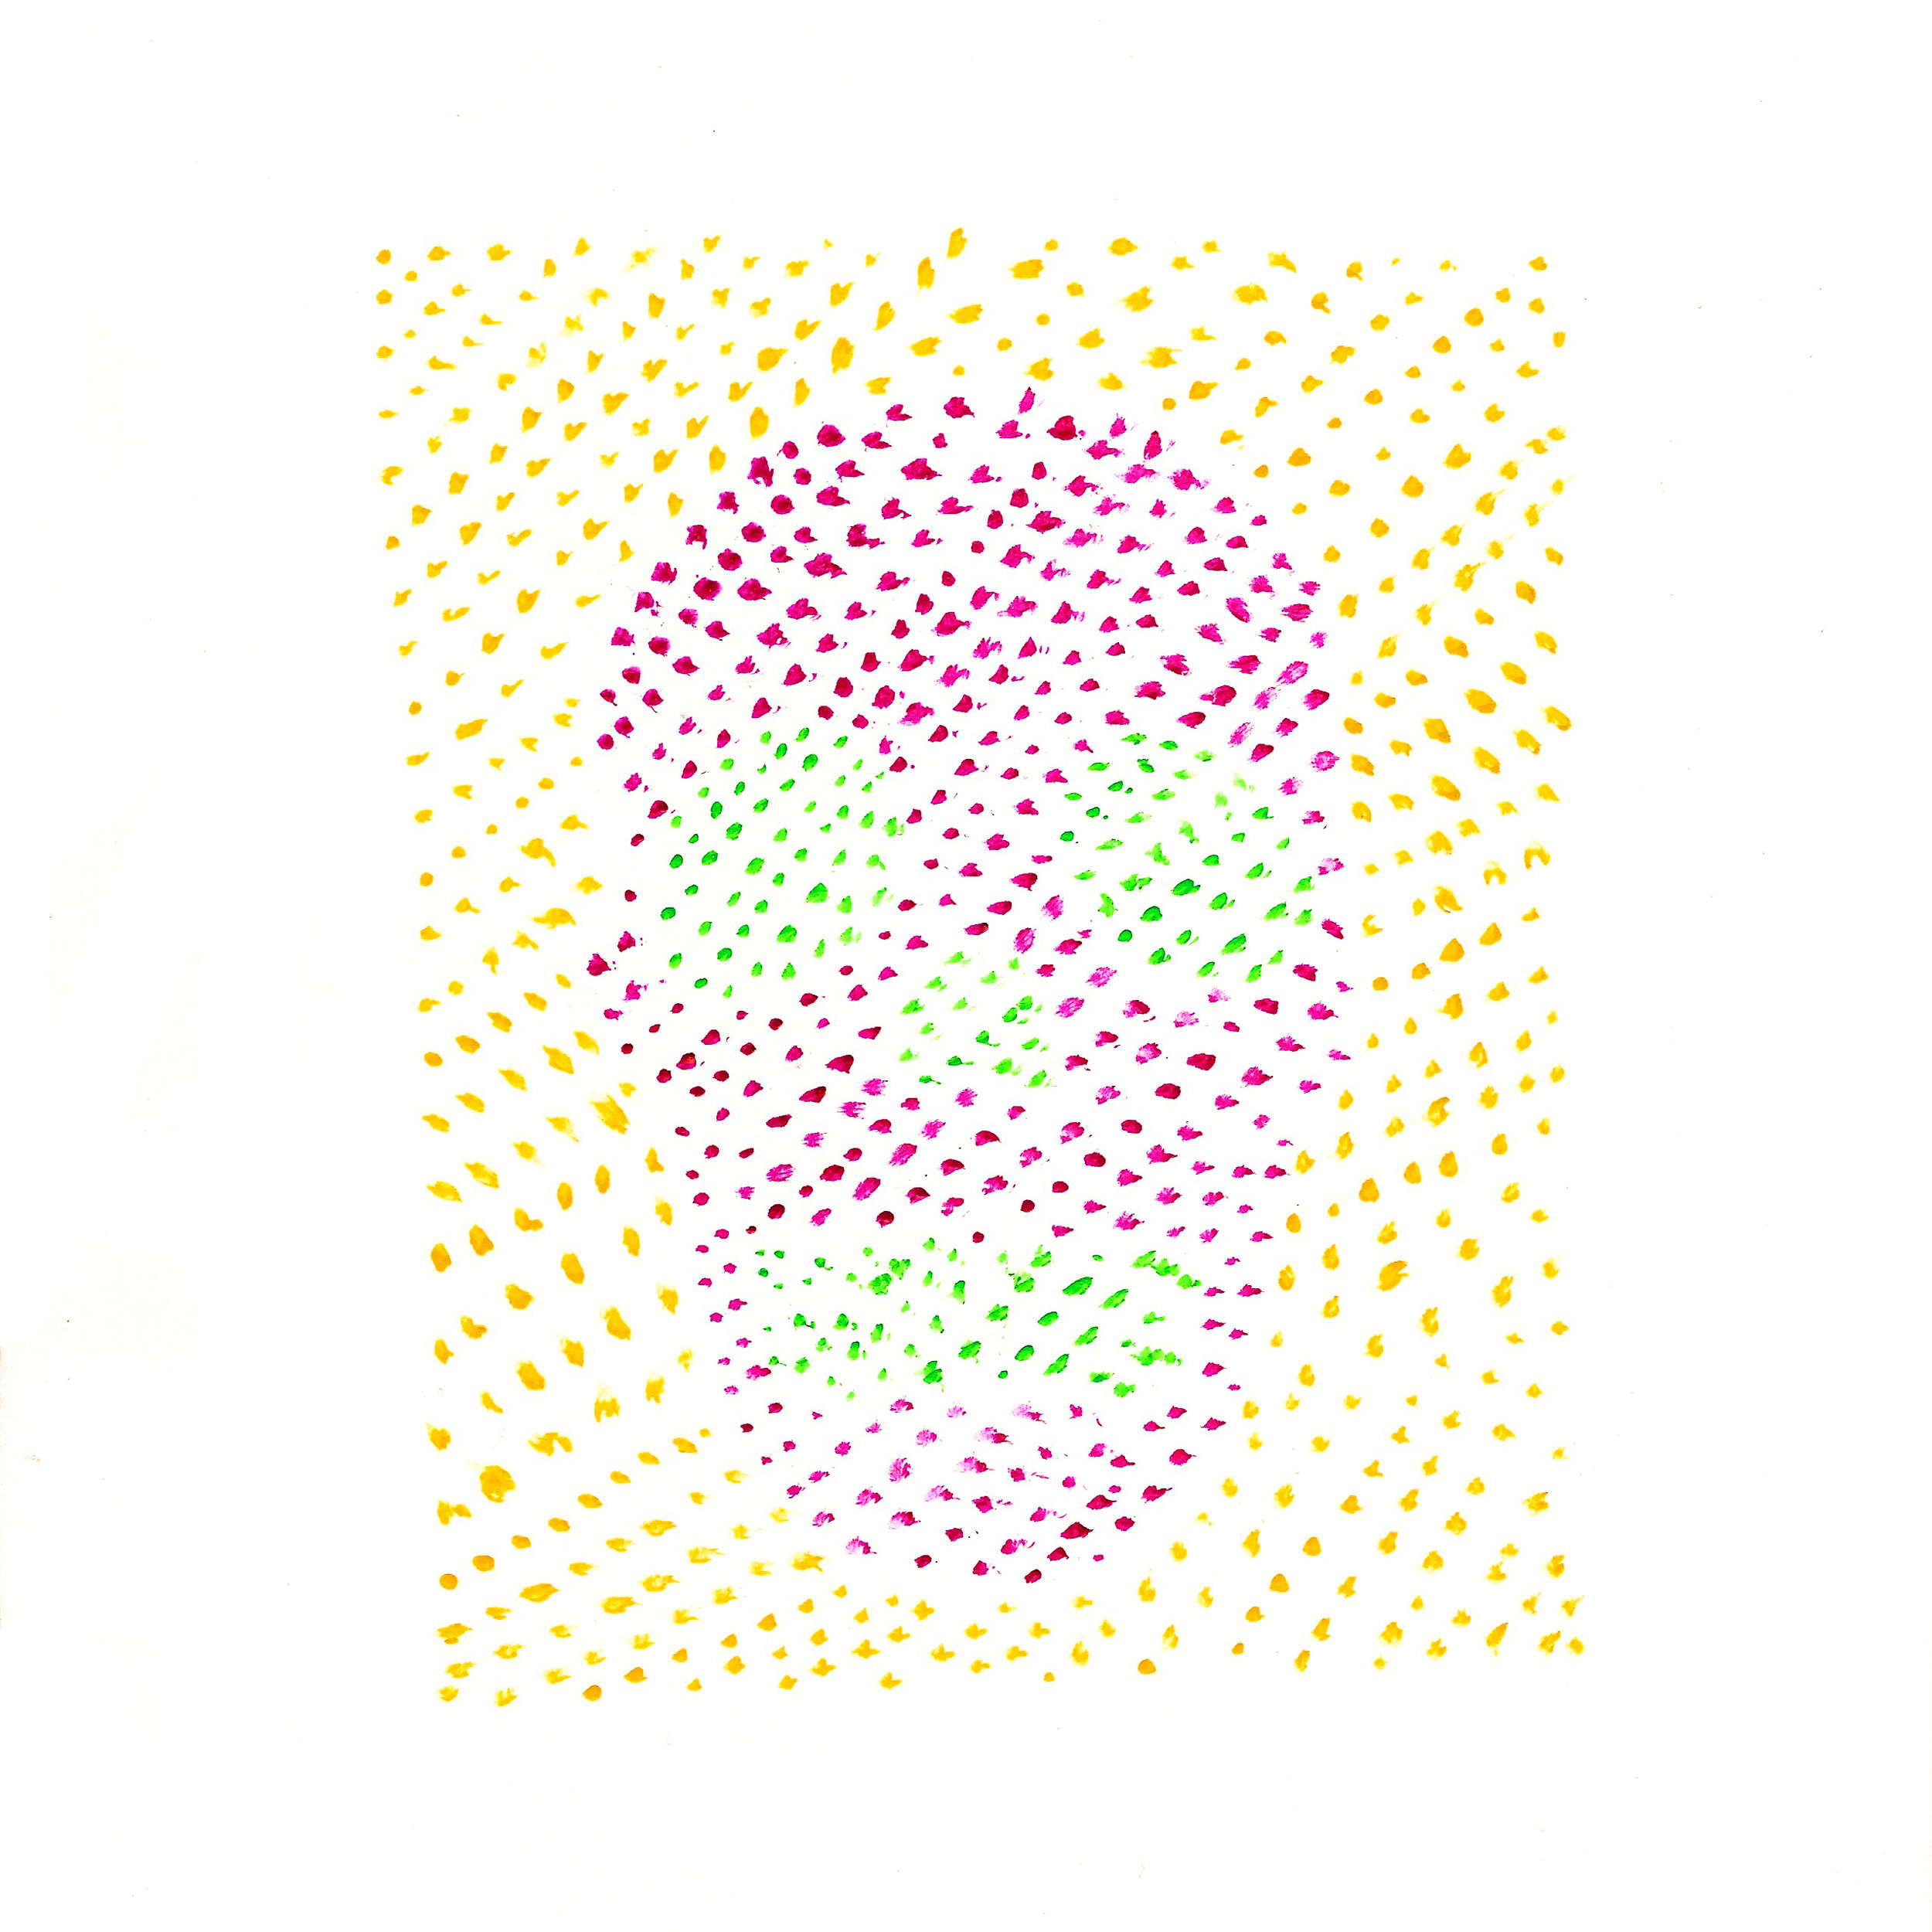 watercolor dots copy.jpg